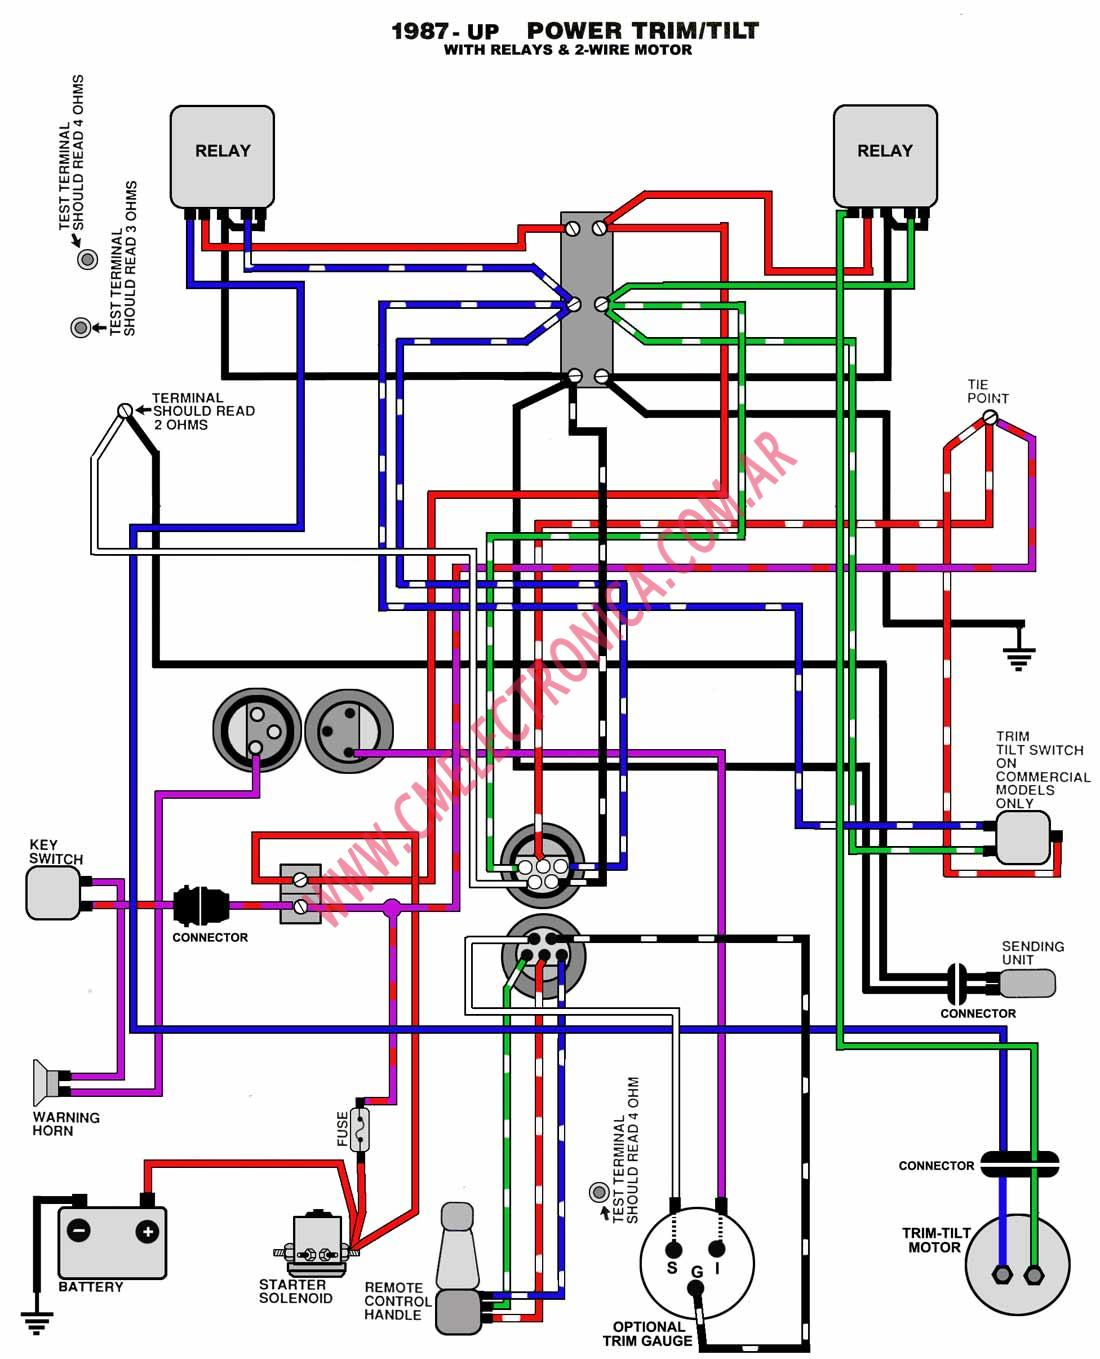 Xr 9116 Ignition Switch Wiring Diagram Besides Evinrude Omc Ignition Switch Free Diagram